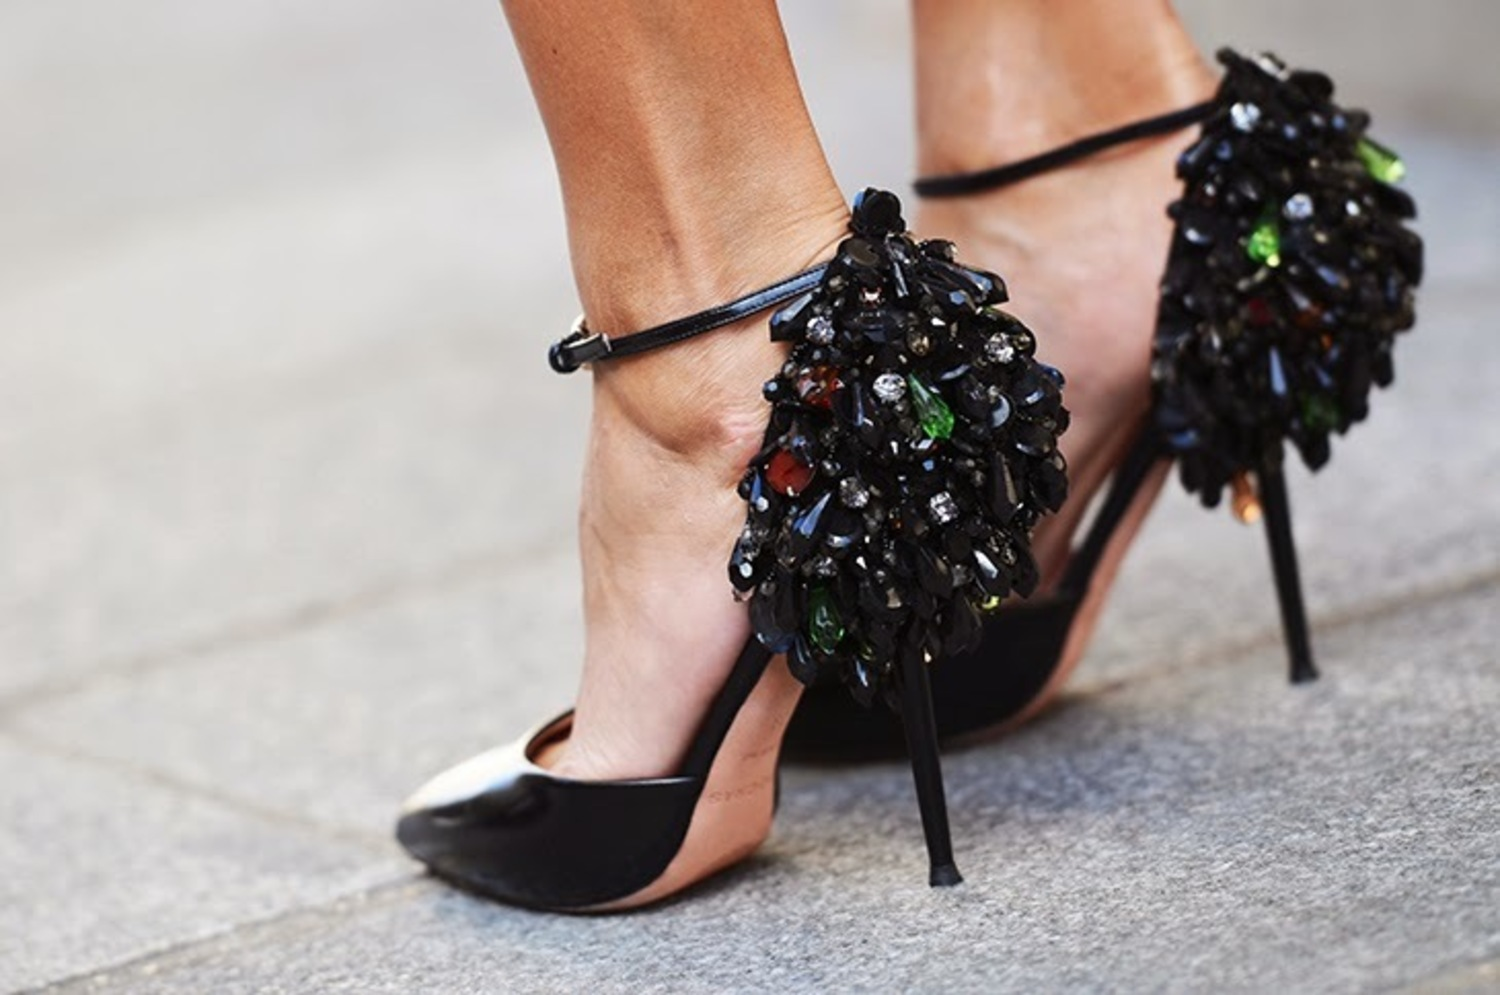 large gianluca senese nobodyknowsmarc paris fashion week street style giovanna battaglia rochas high heels details